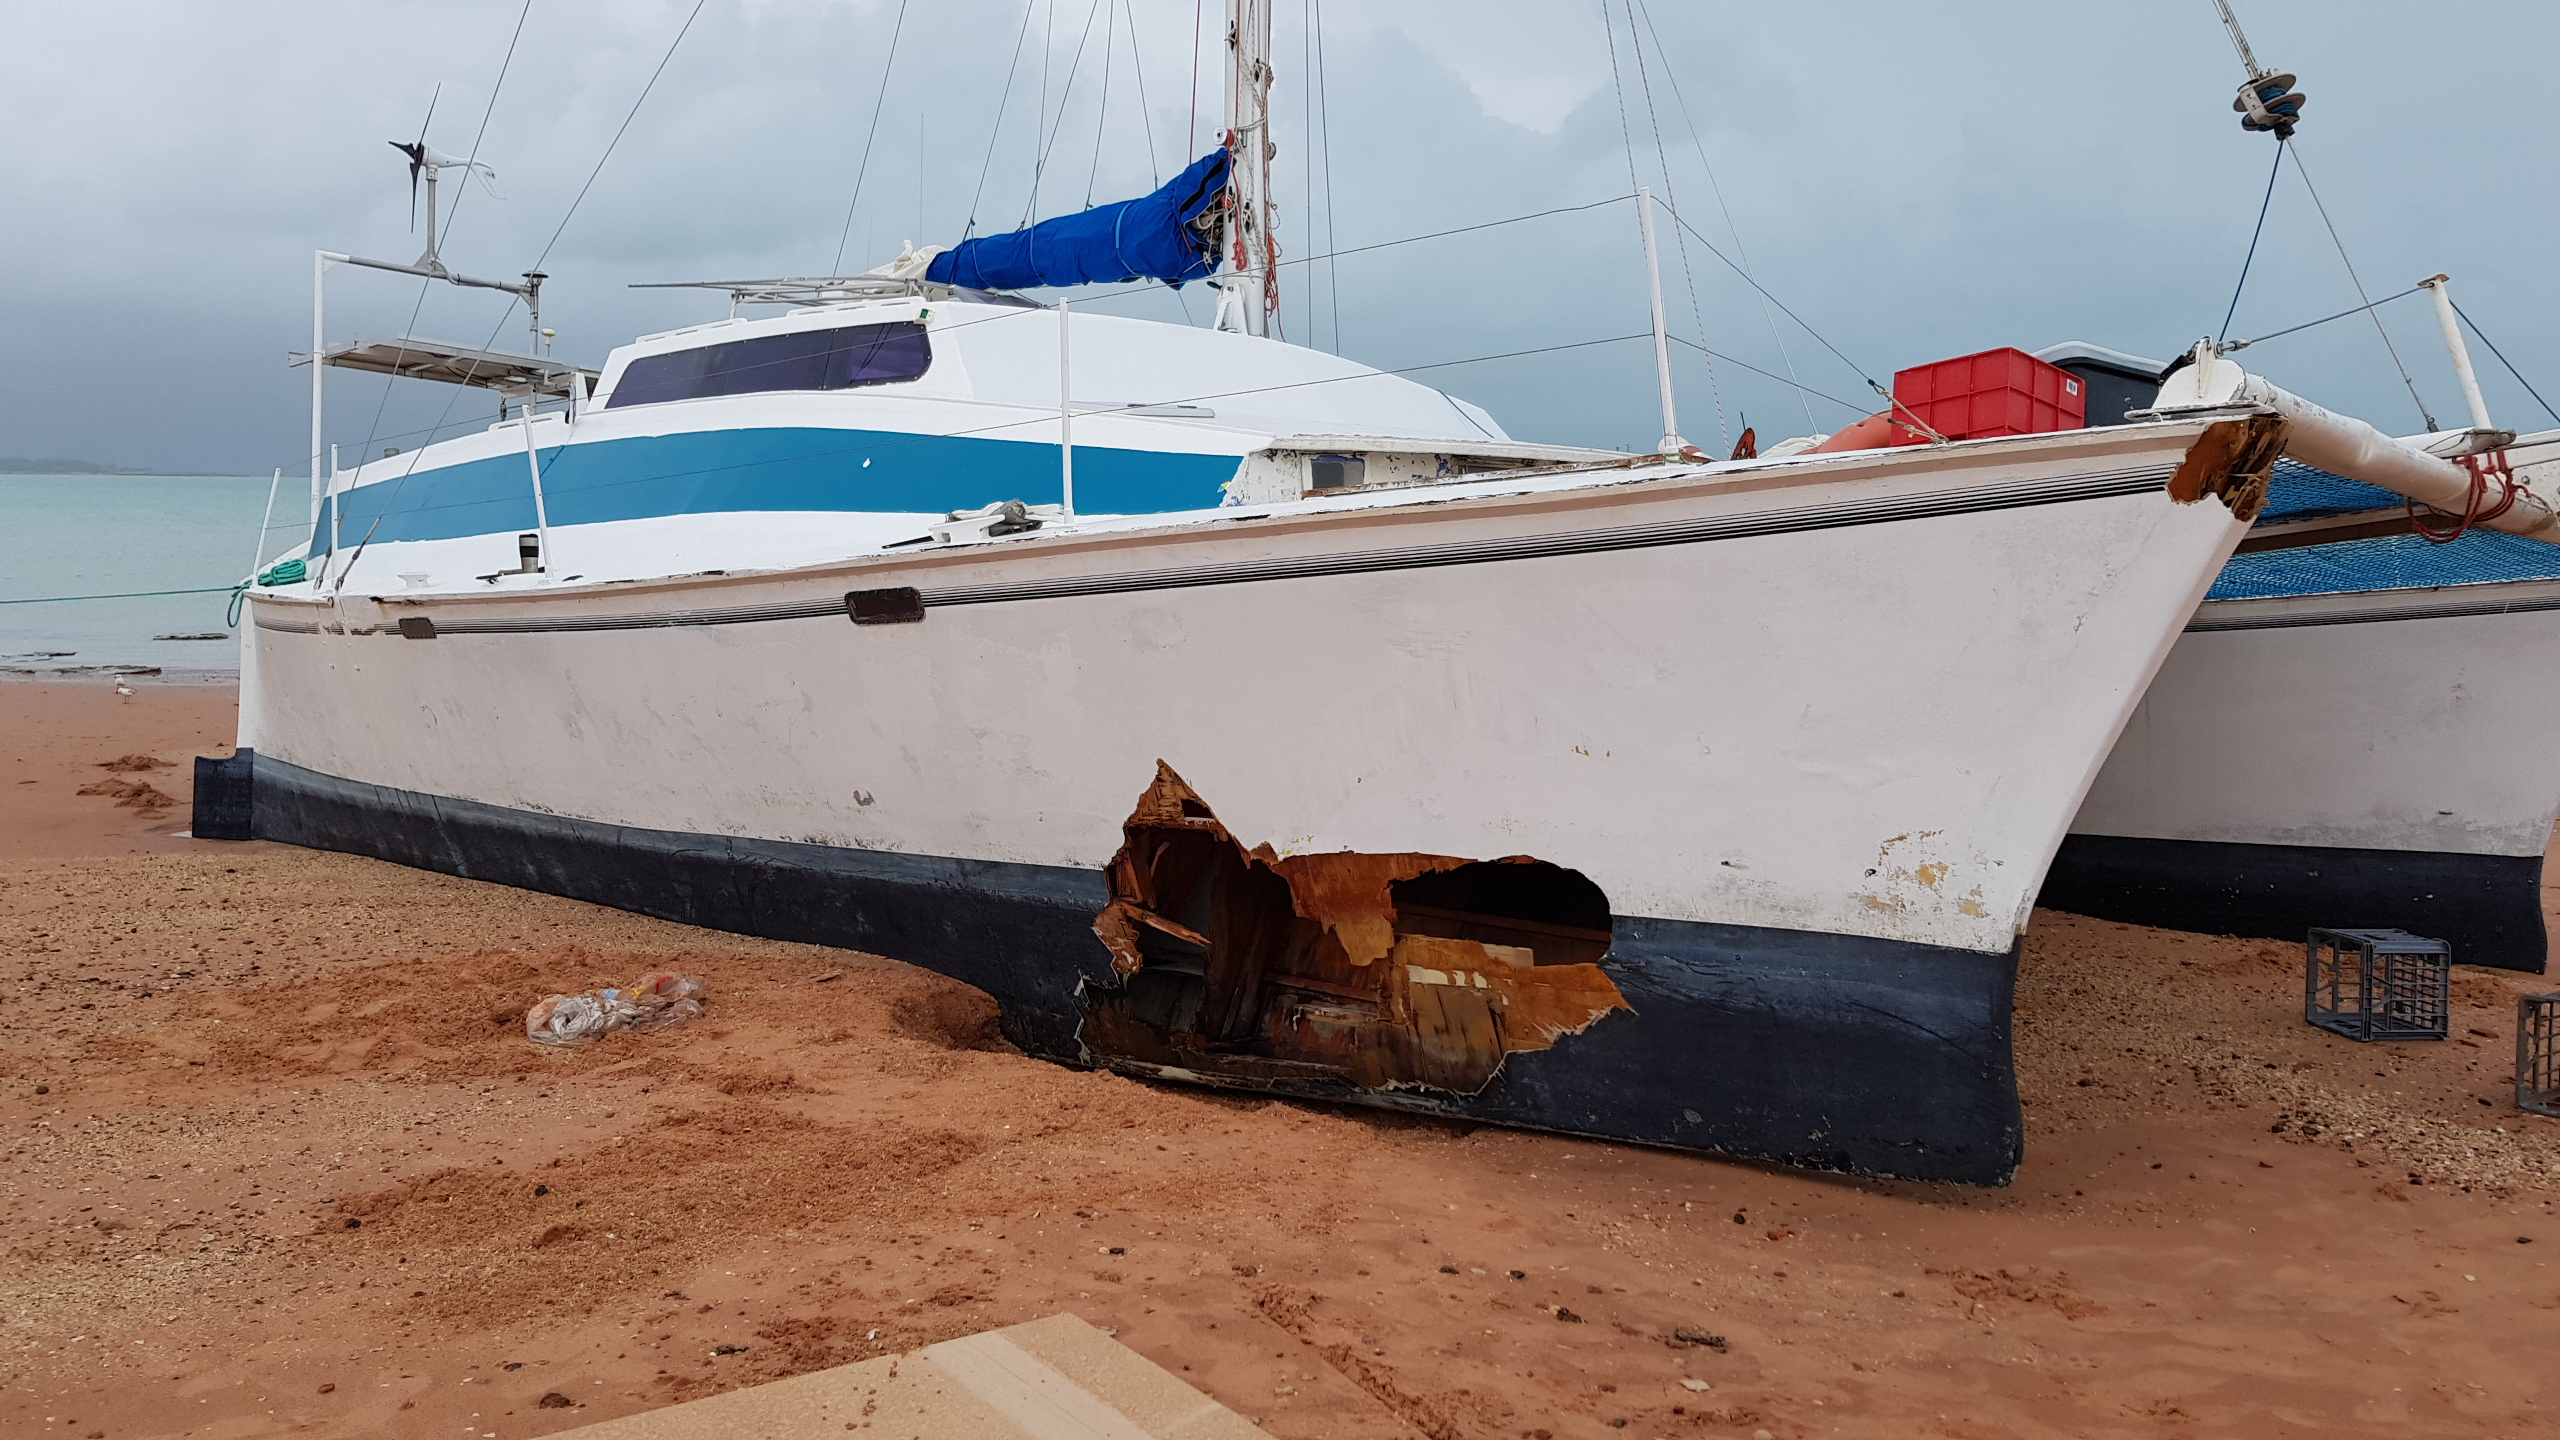 The morning after the storm - the smashed starboard hull of the beached catamaran, the Shaguar. Jason's seamanship and courage got the yacht ashore on a beach during the cyclone, but he couldn't avoid the hidden rocks or mangrove trees.